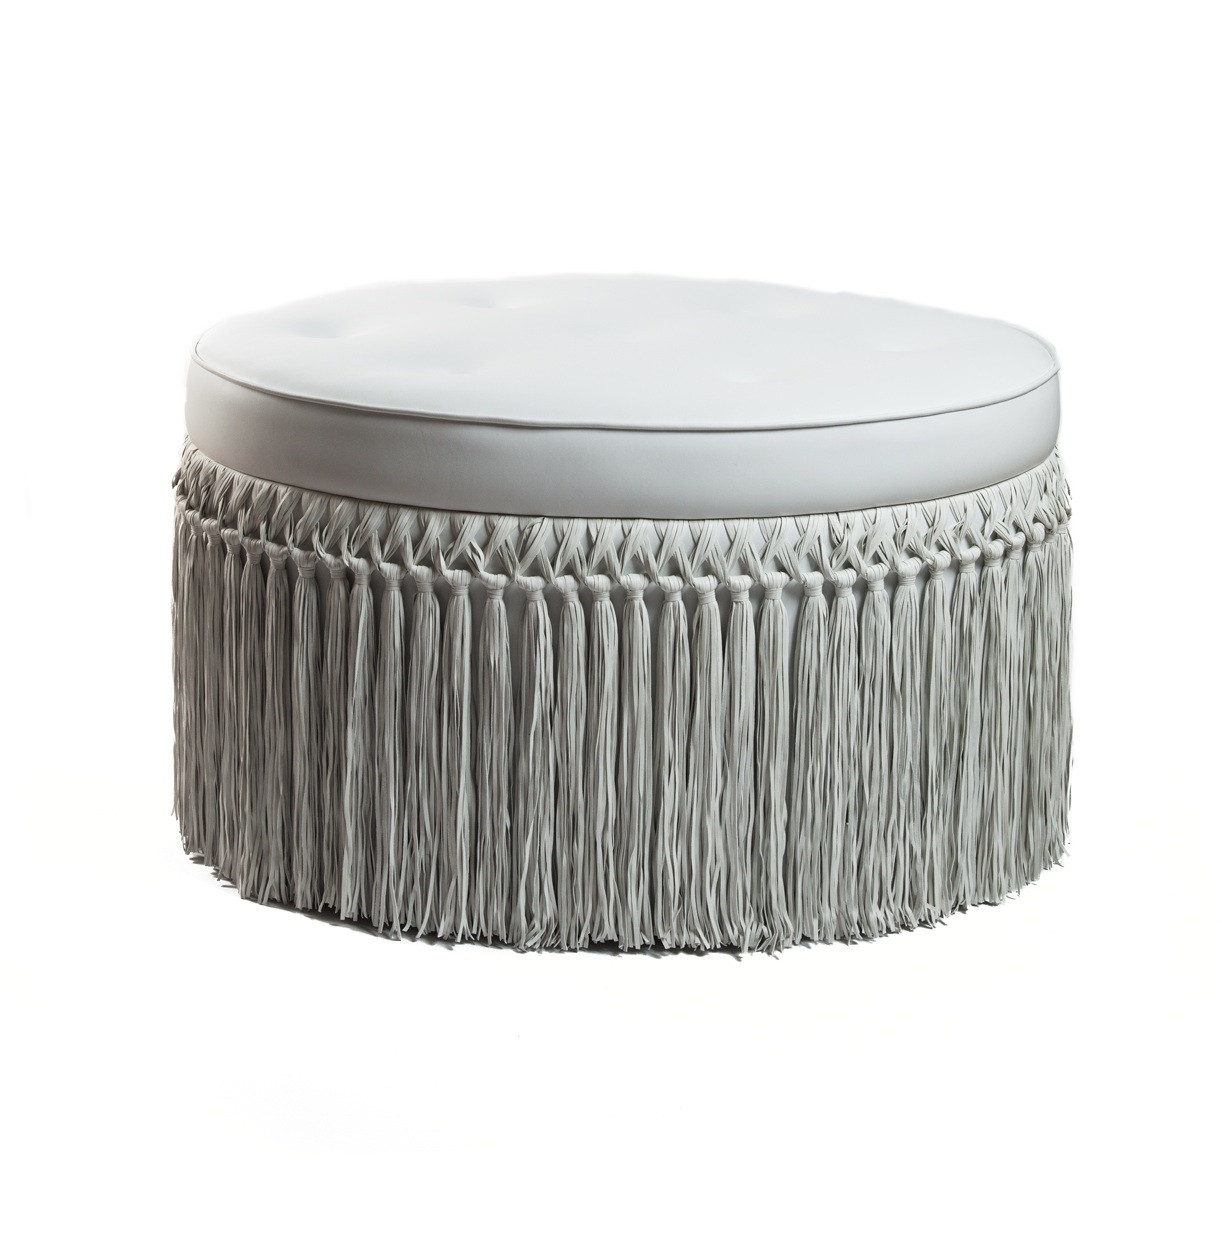 BARBARELLA LUXE LEATHER FRINGED OTTOMAN